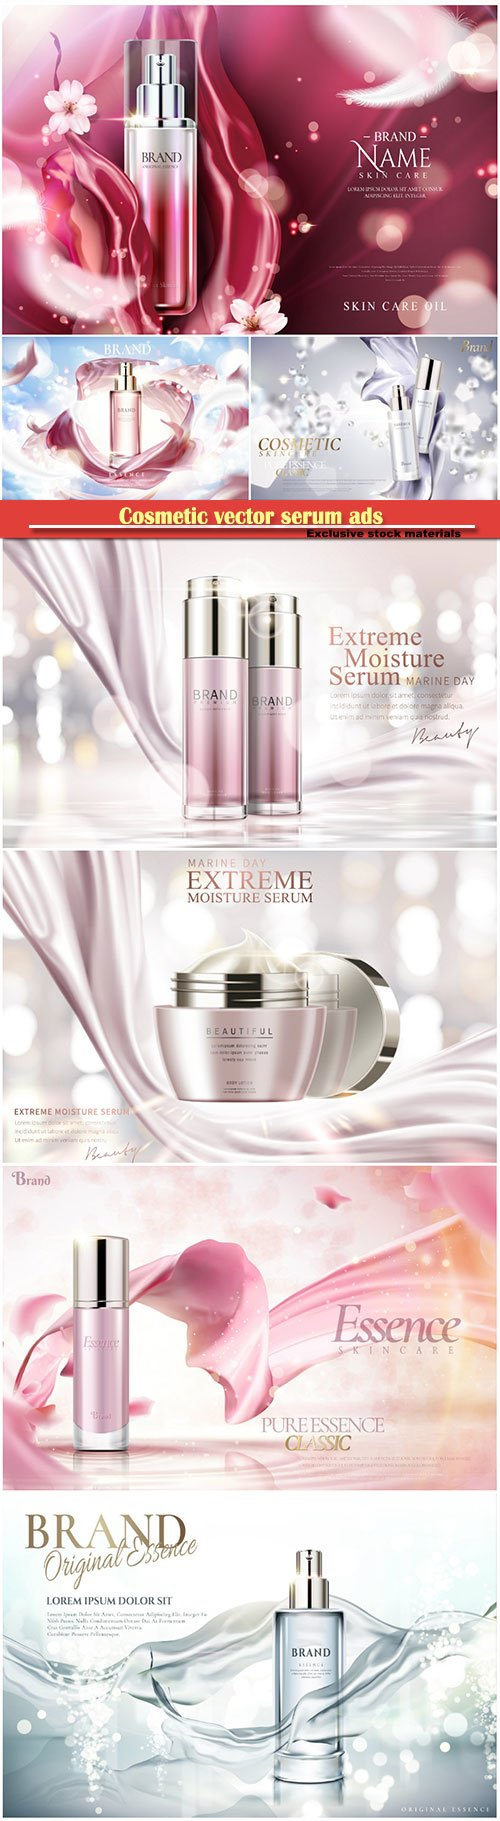 Cosmetic vector serum ads, cosmetic spray, cosmetic cream  in 3d illustration